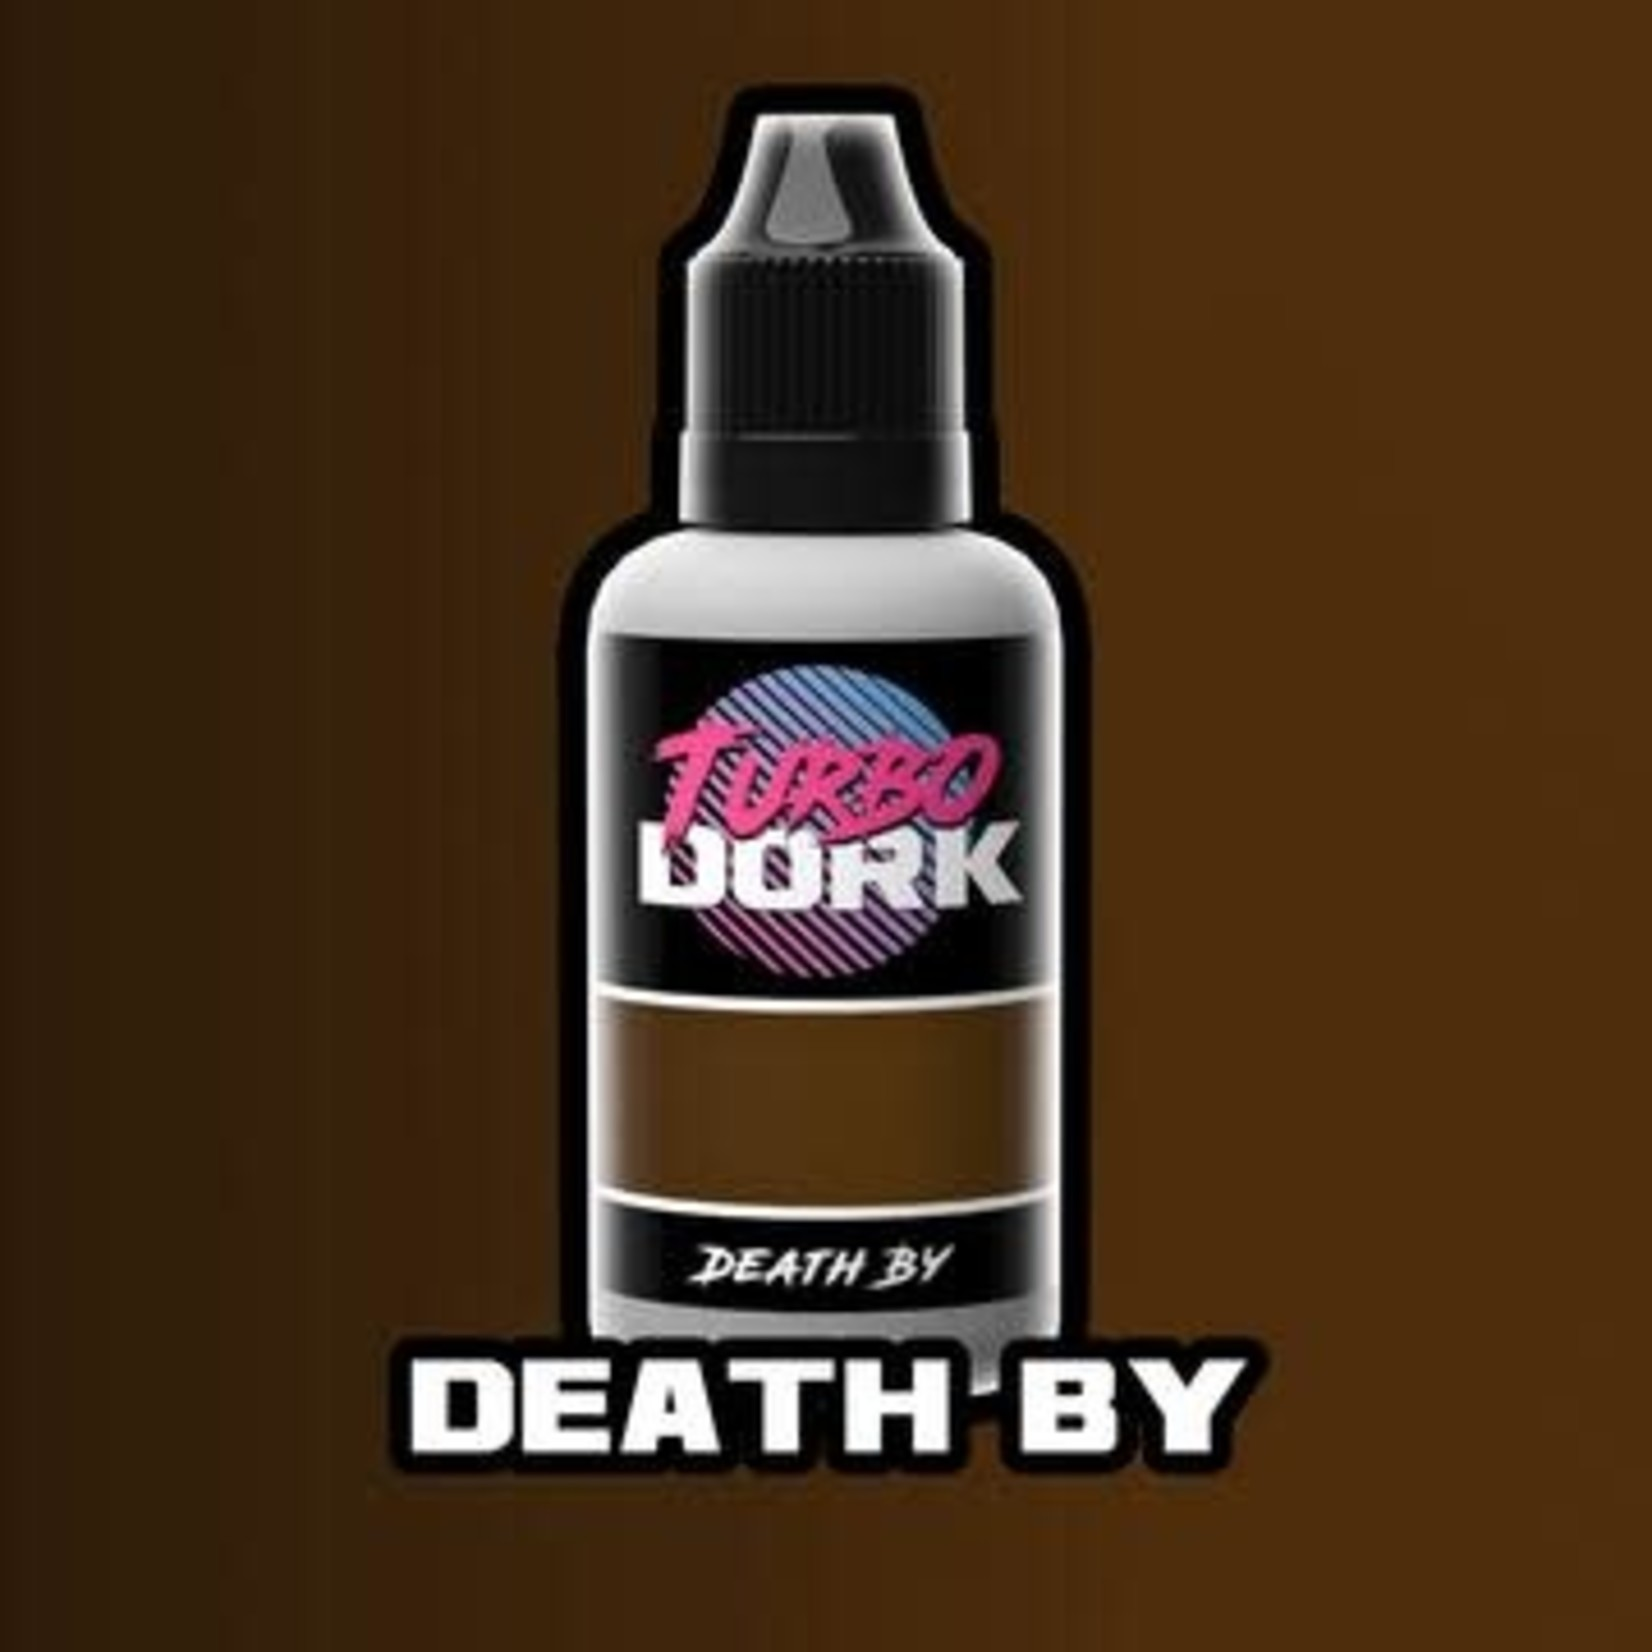 Turbo Dork Turbo Dork  Death By Metallic Acrylic Paint 20ml Bottle